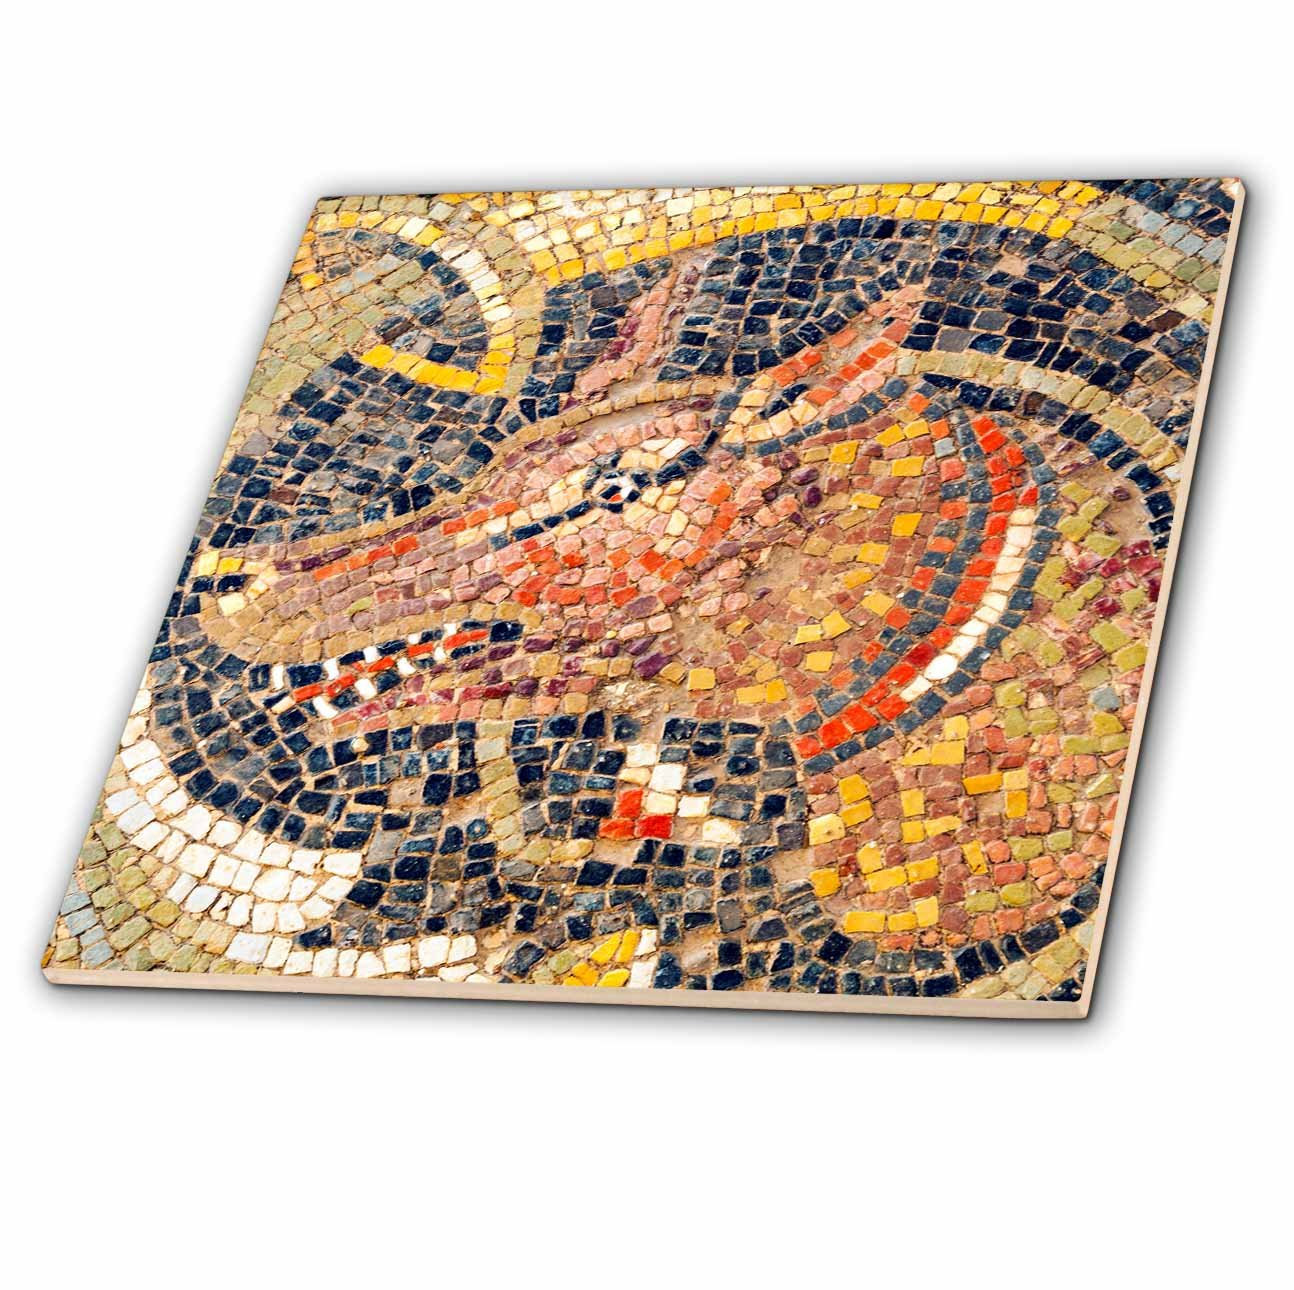 3dRose Danita Delimont - Artwork - Hunting dog Mosaic, New House Of Hunt, Bulla Regia, Tunisia - 12 Inch Ceramic Tile (ct_276614_4) by 3dRose (Image #1)